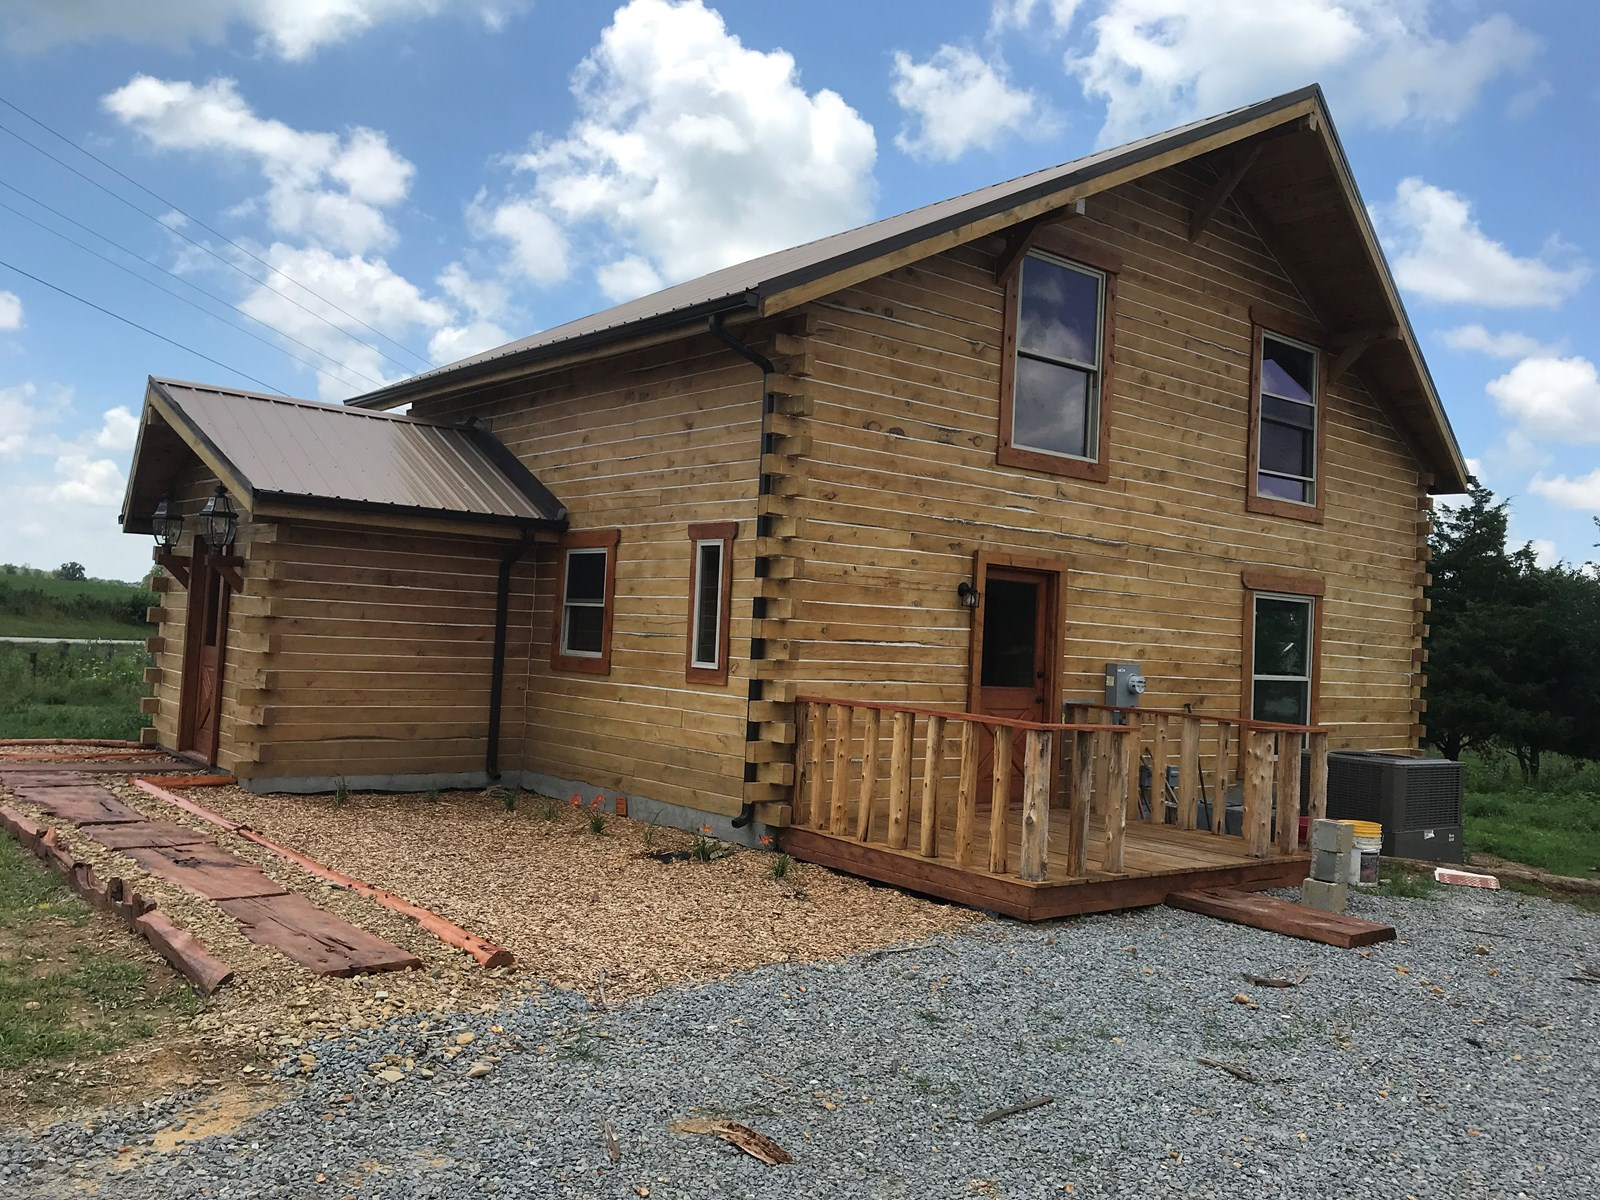 Log Home, 3 Bedroom, 2 Acres, Metcalfe County